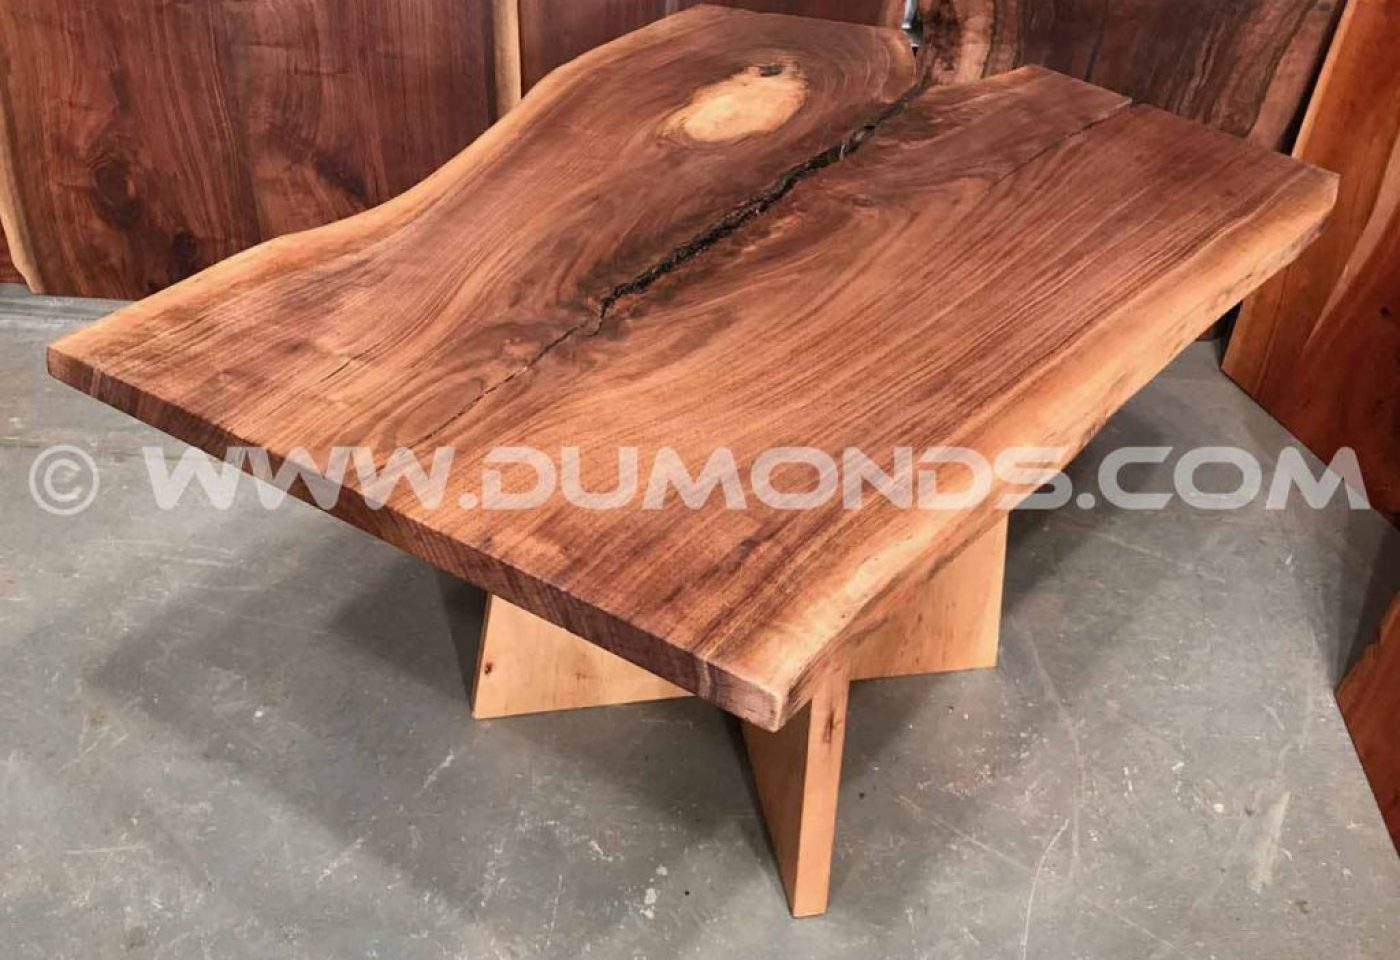 WALNUT CROTCH LIVE EDGE SLAB TABLE WITH WALNUT BASE